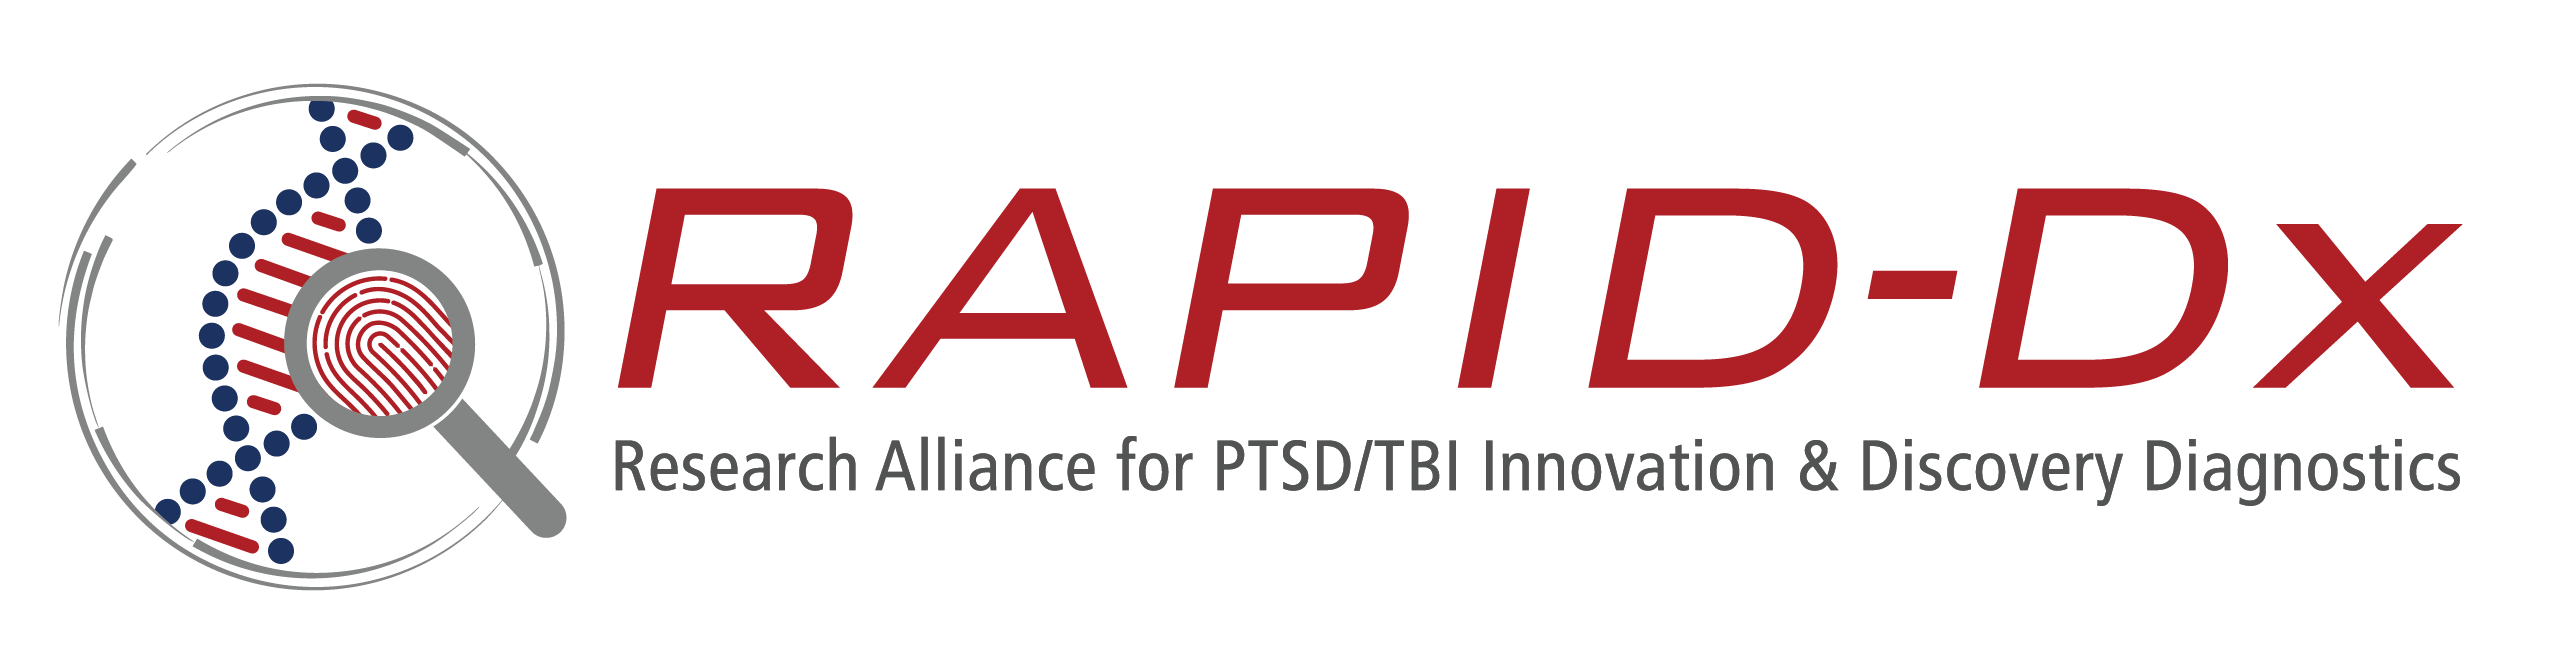 RAPID-Dx - Research Alliance for PTSD/TBI Innovation & Discovery Diagnostics